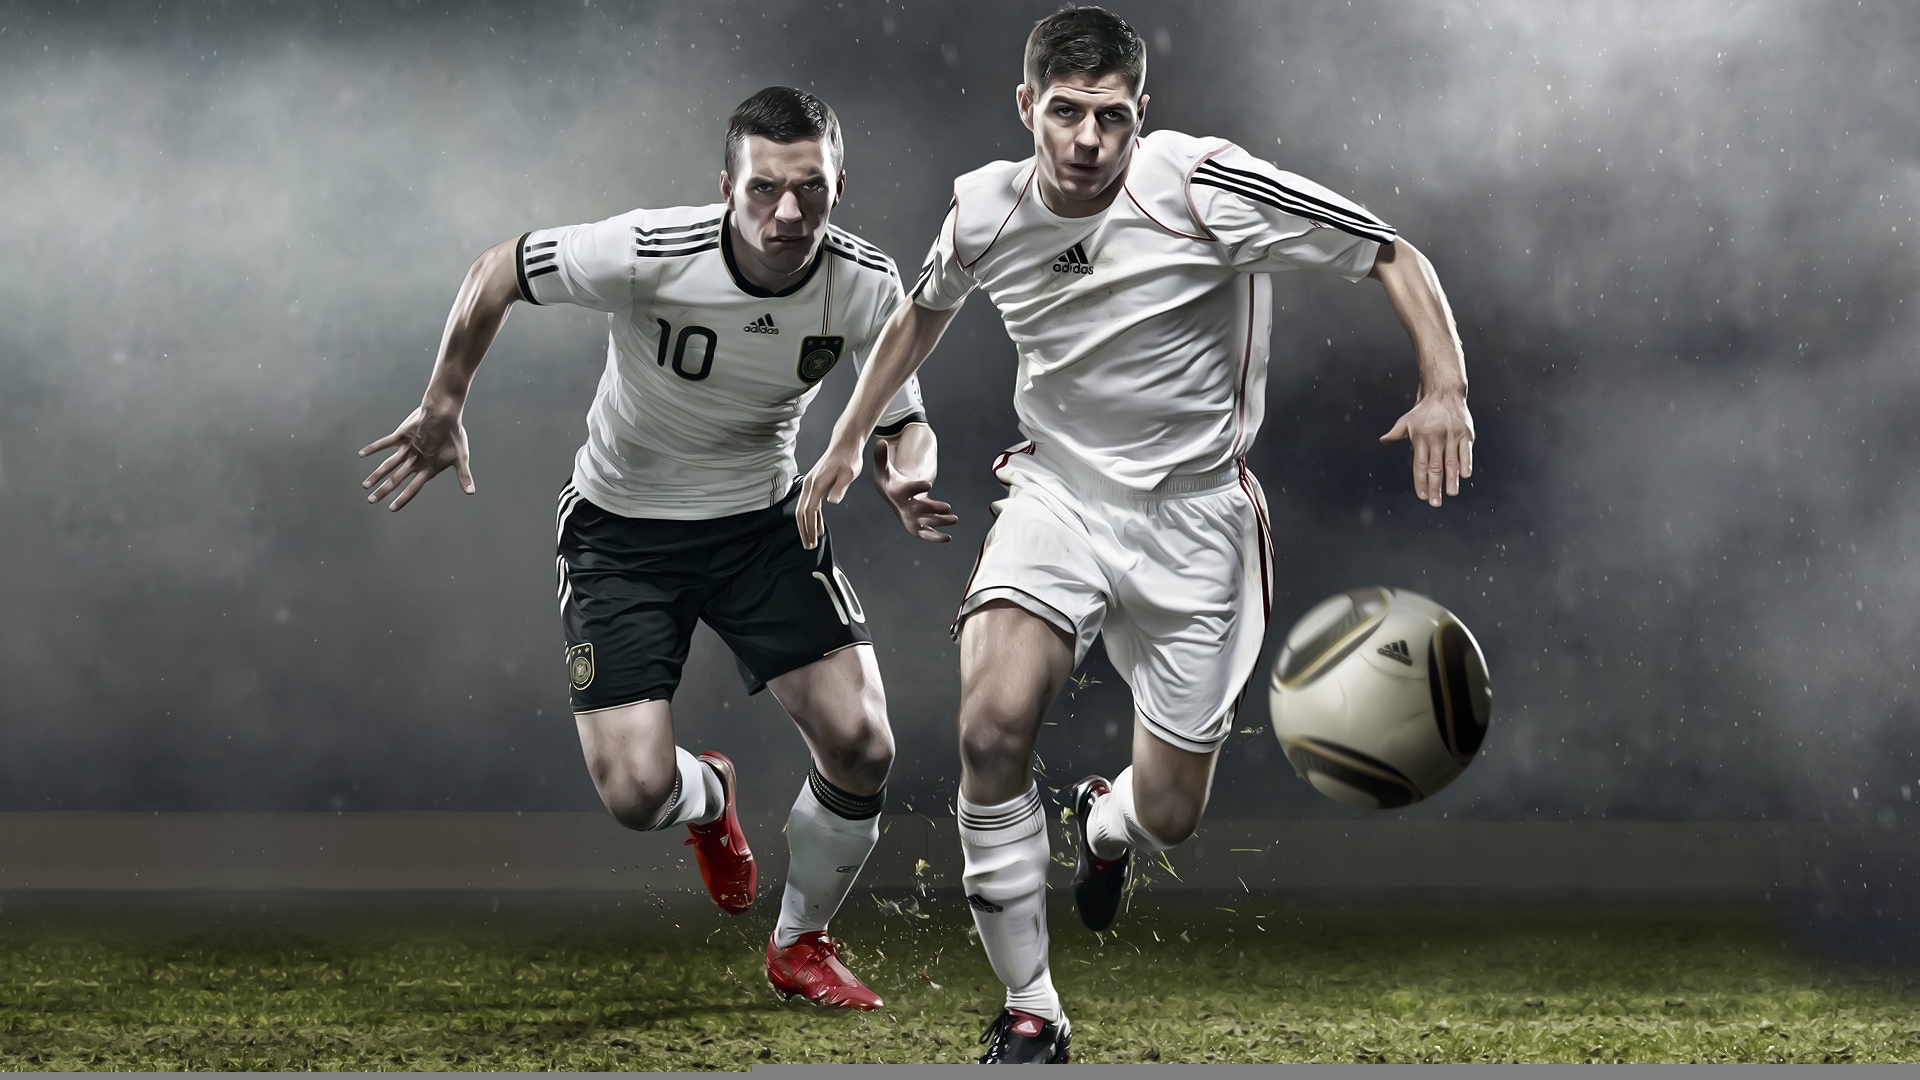 HD-Soccer-Football-Player-p-Full-Size-Download-wallpaper-wpc5805779